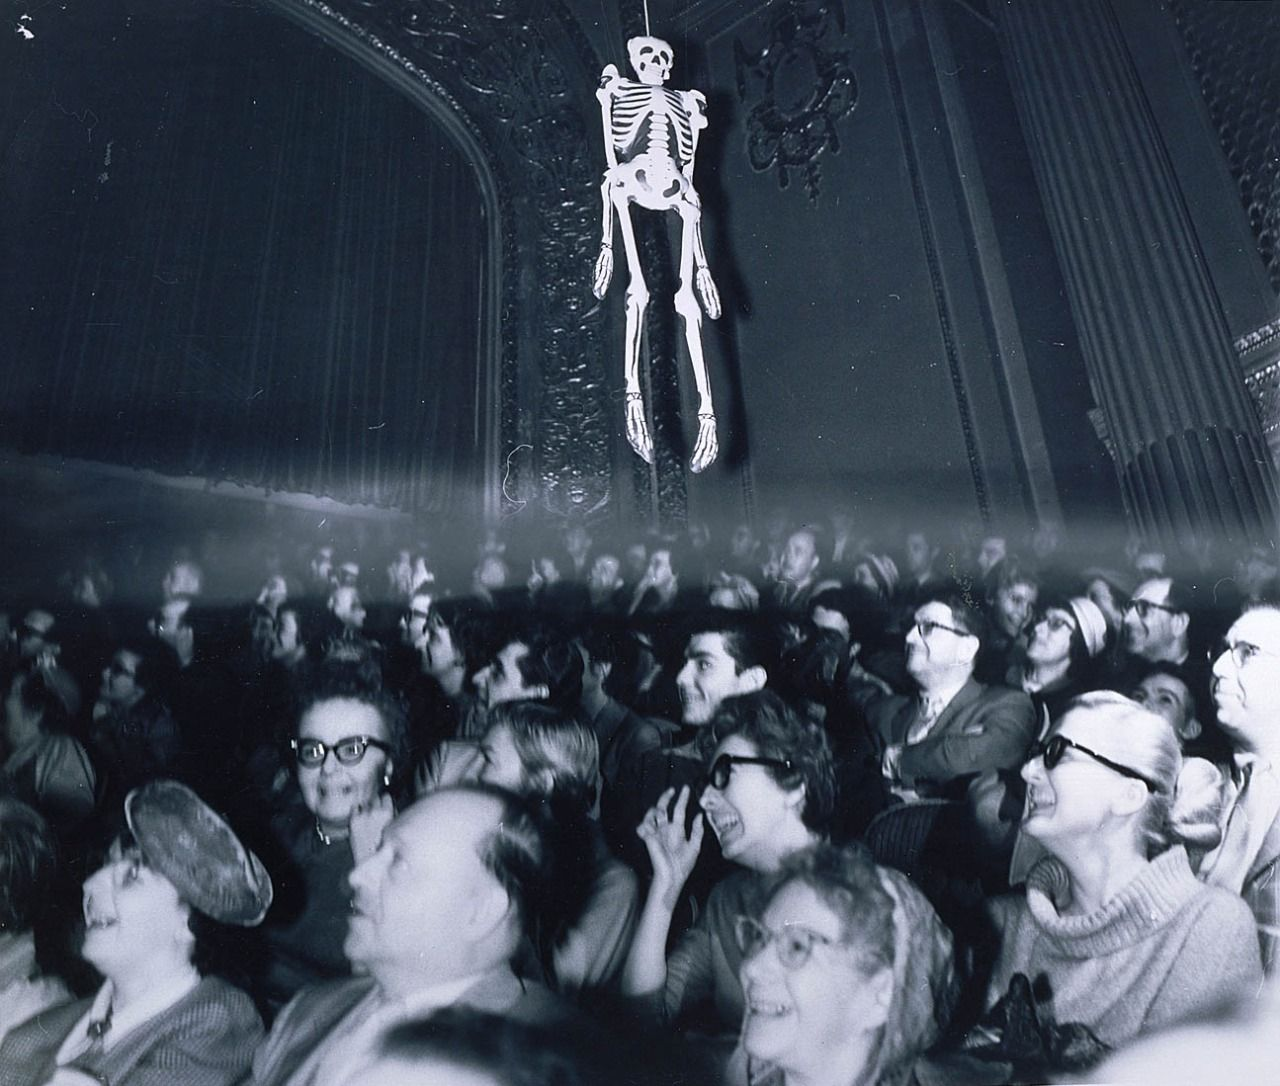 Untitled (In the Movie House Watching Haunting of Hill House), ca. 1950, Weegee, Gelatin silver print on paper, Smithsonian American Art Museum Museum purchase, 1988.45.